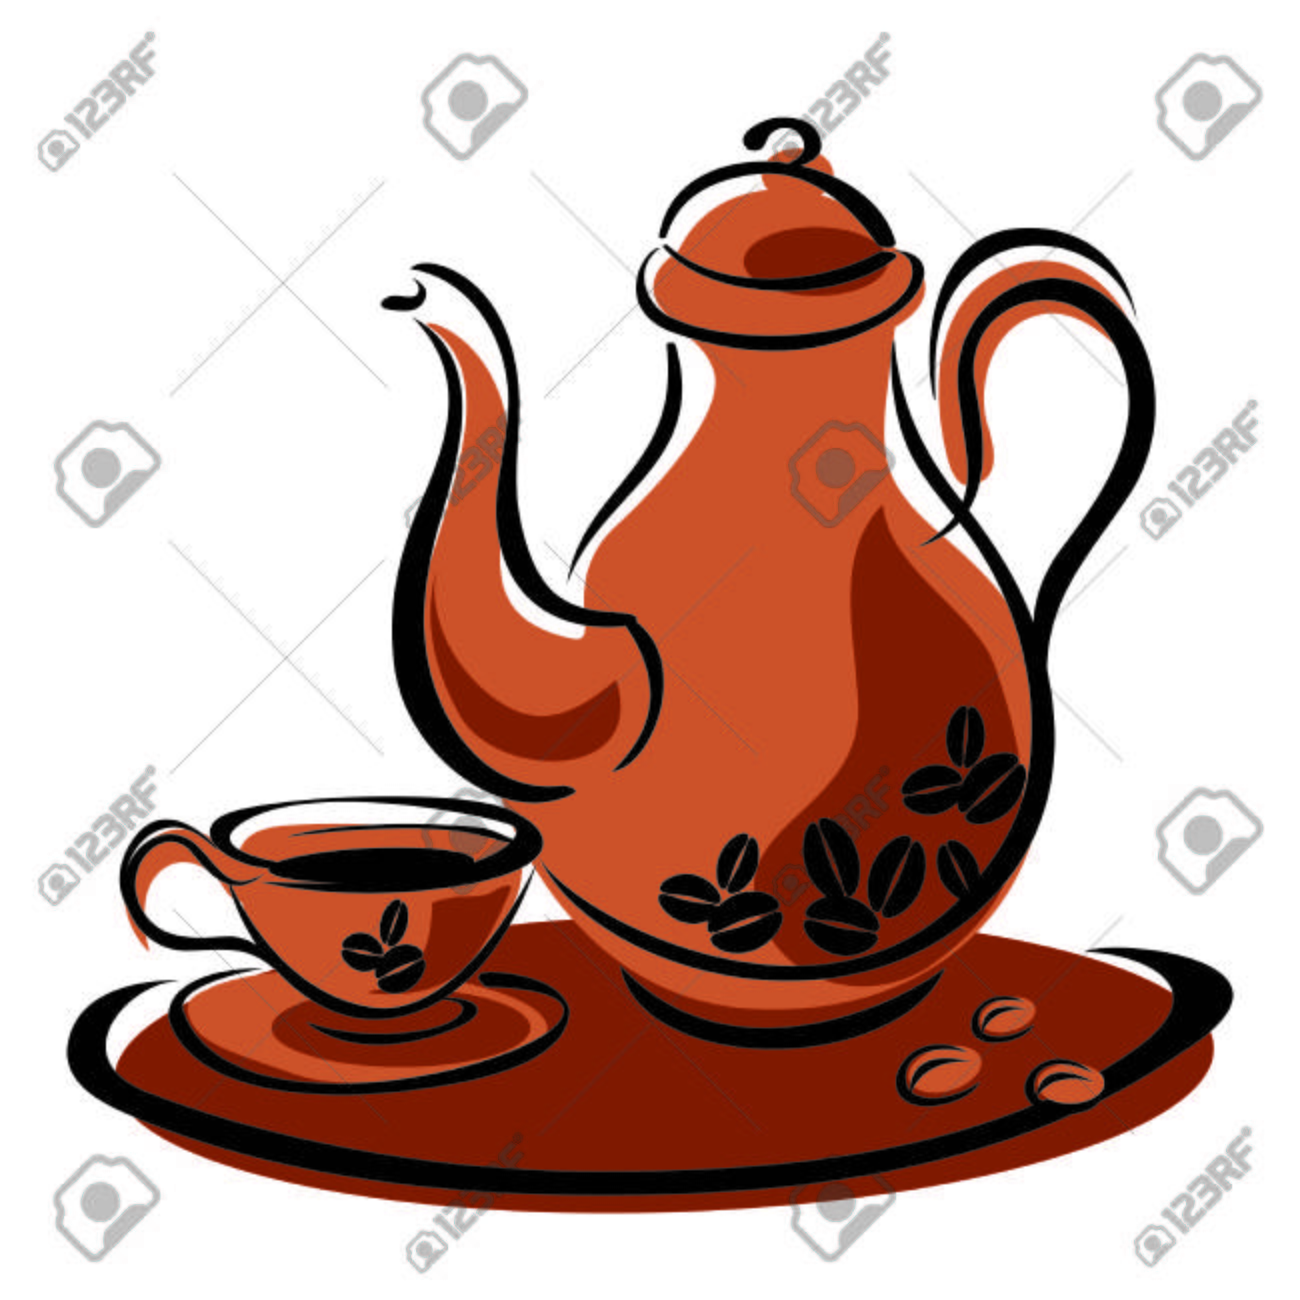 Coffee pot & cup clipart clip royalty free stock Coffee Pot Clipart | Free download best Coffee Pot Clipart ... clip royalty free stock